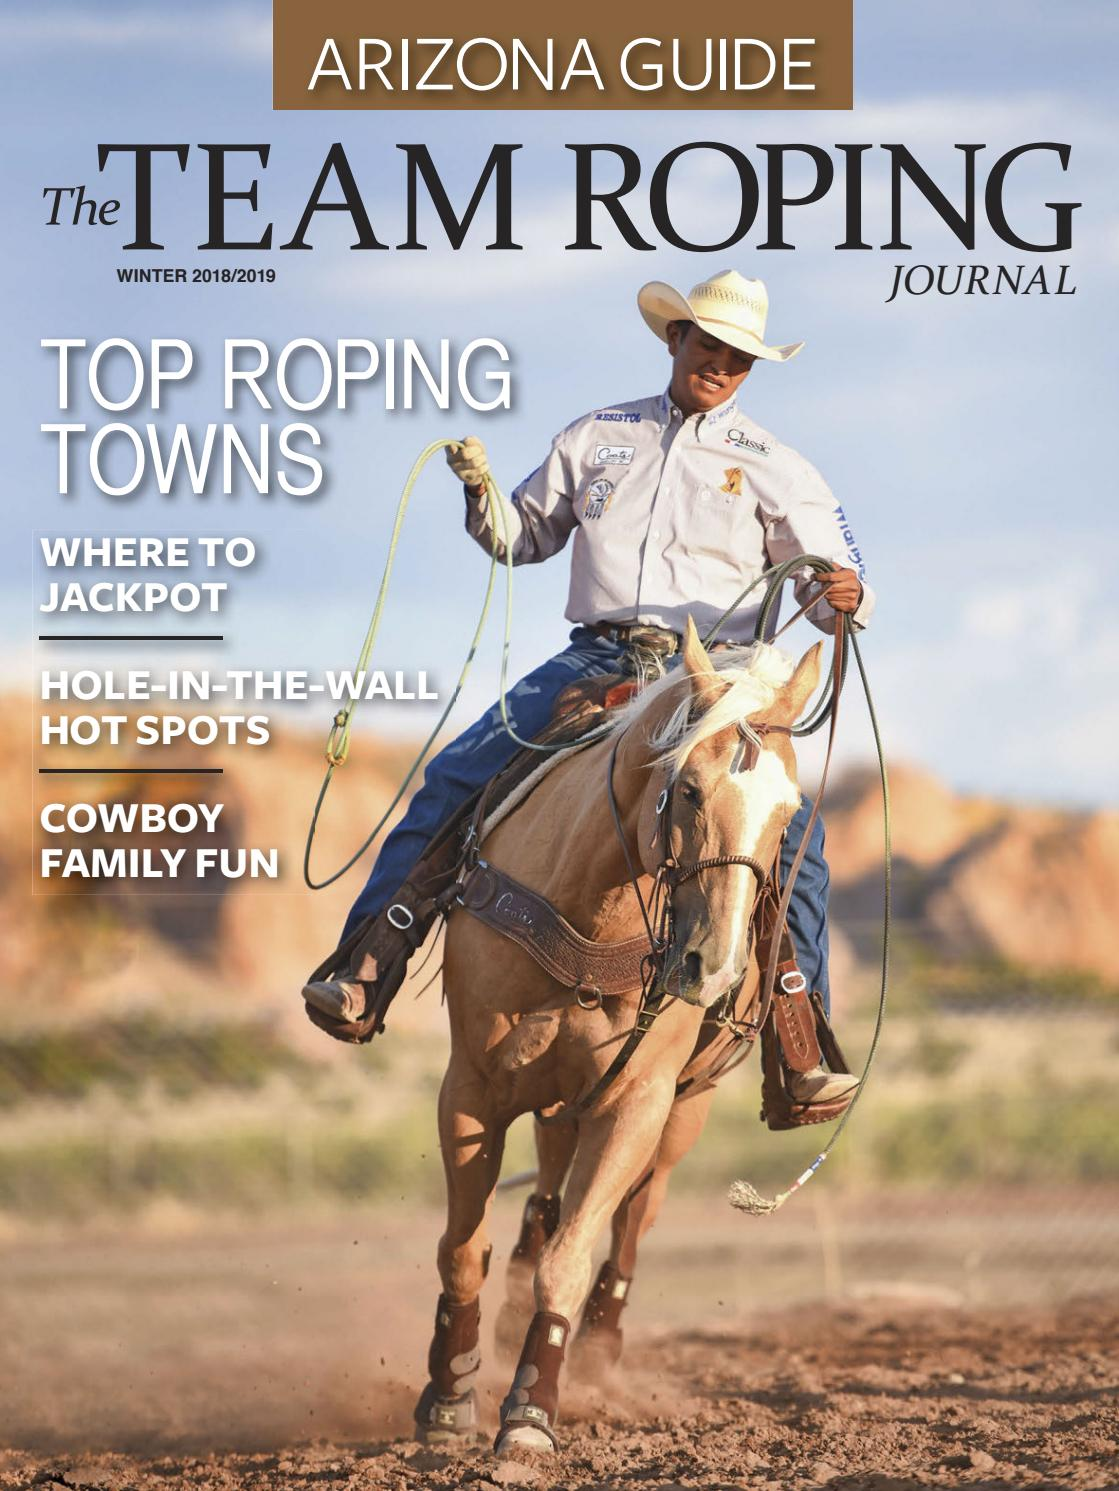 The Team Roping Journal - Arizona Guide by Active Interest Media-Boulder -  issuu